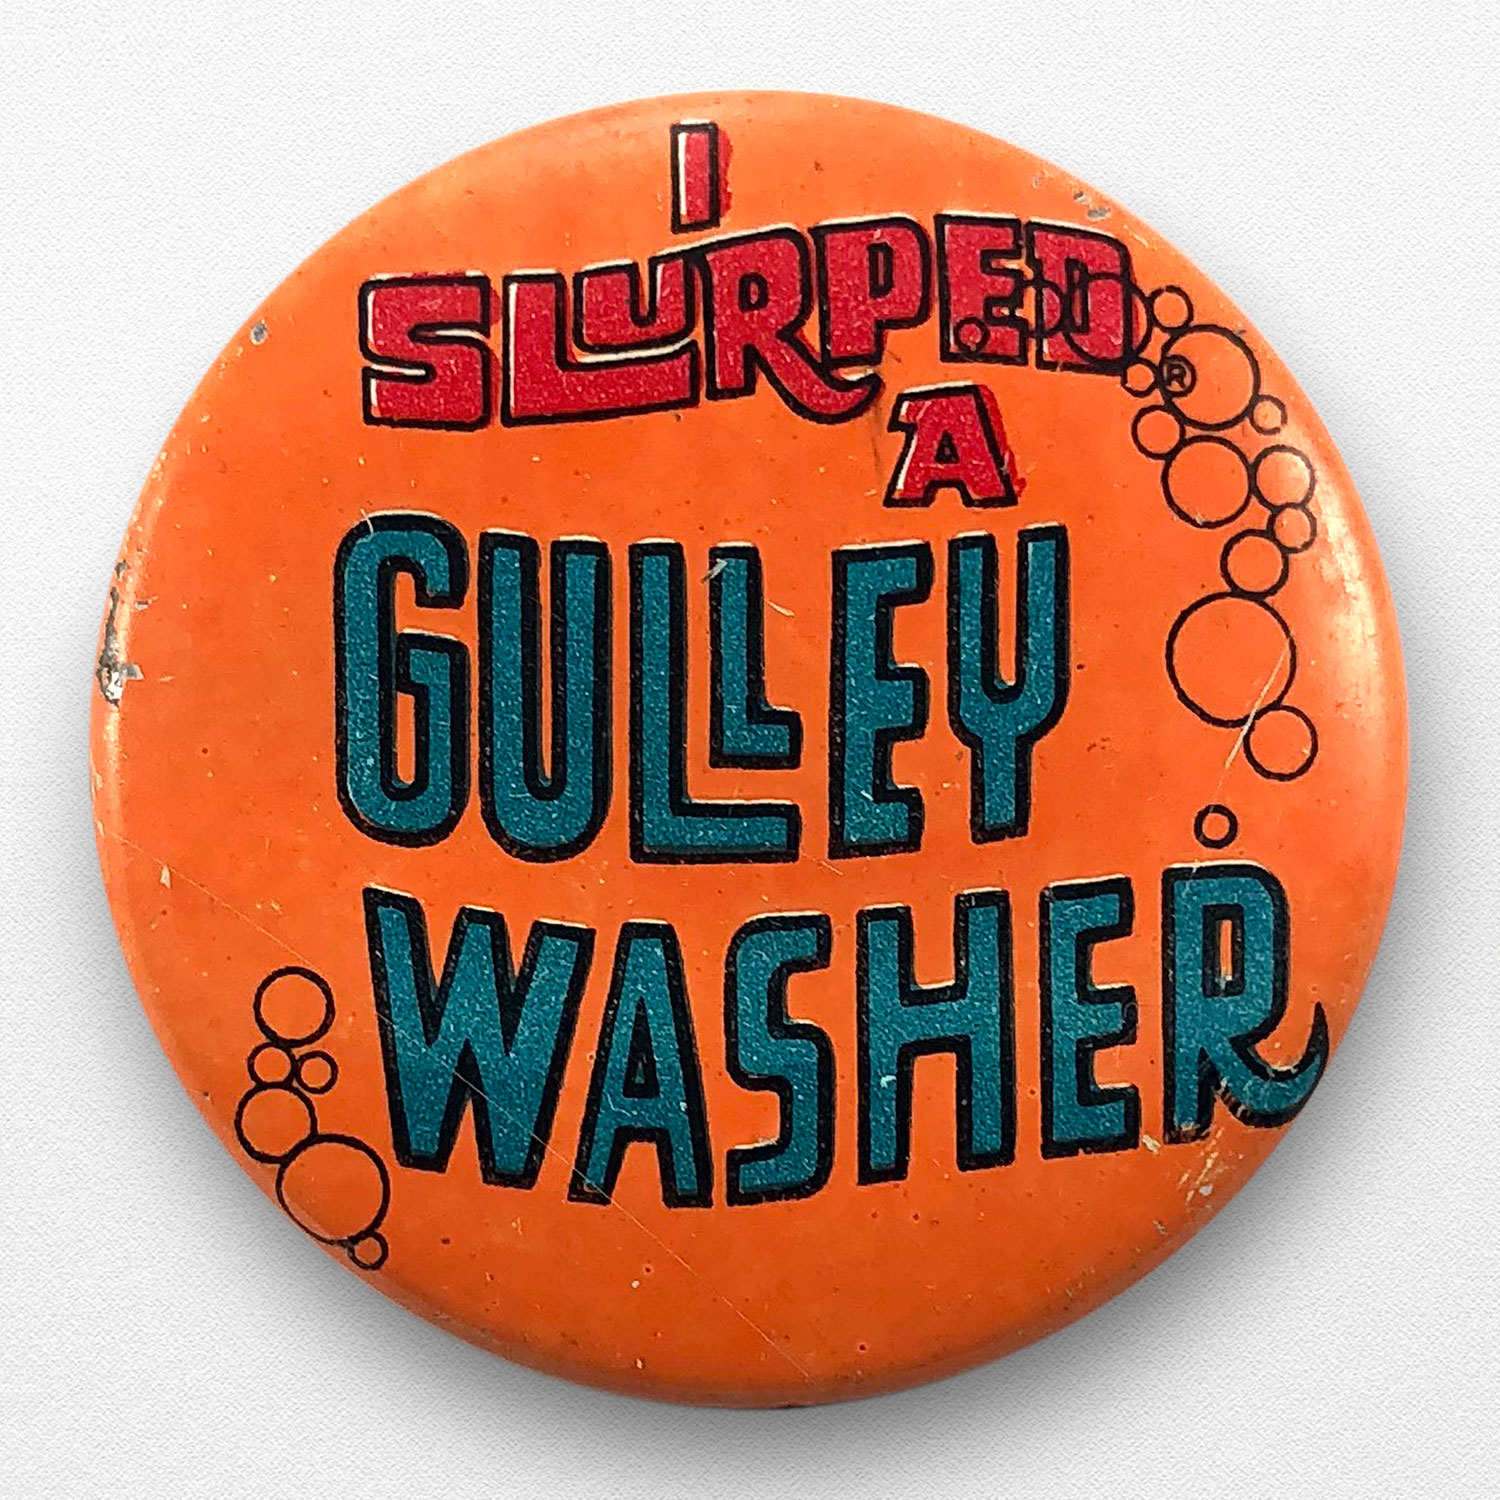 slurpee-gully-washer.jpg